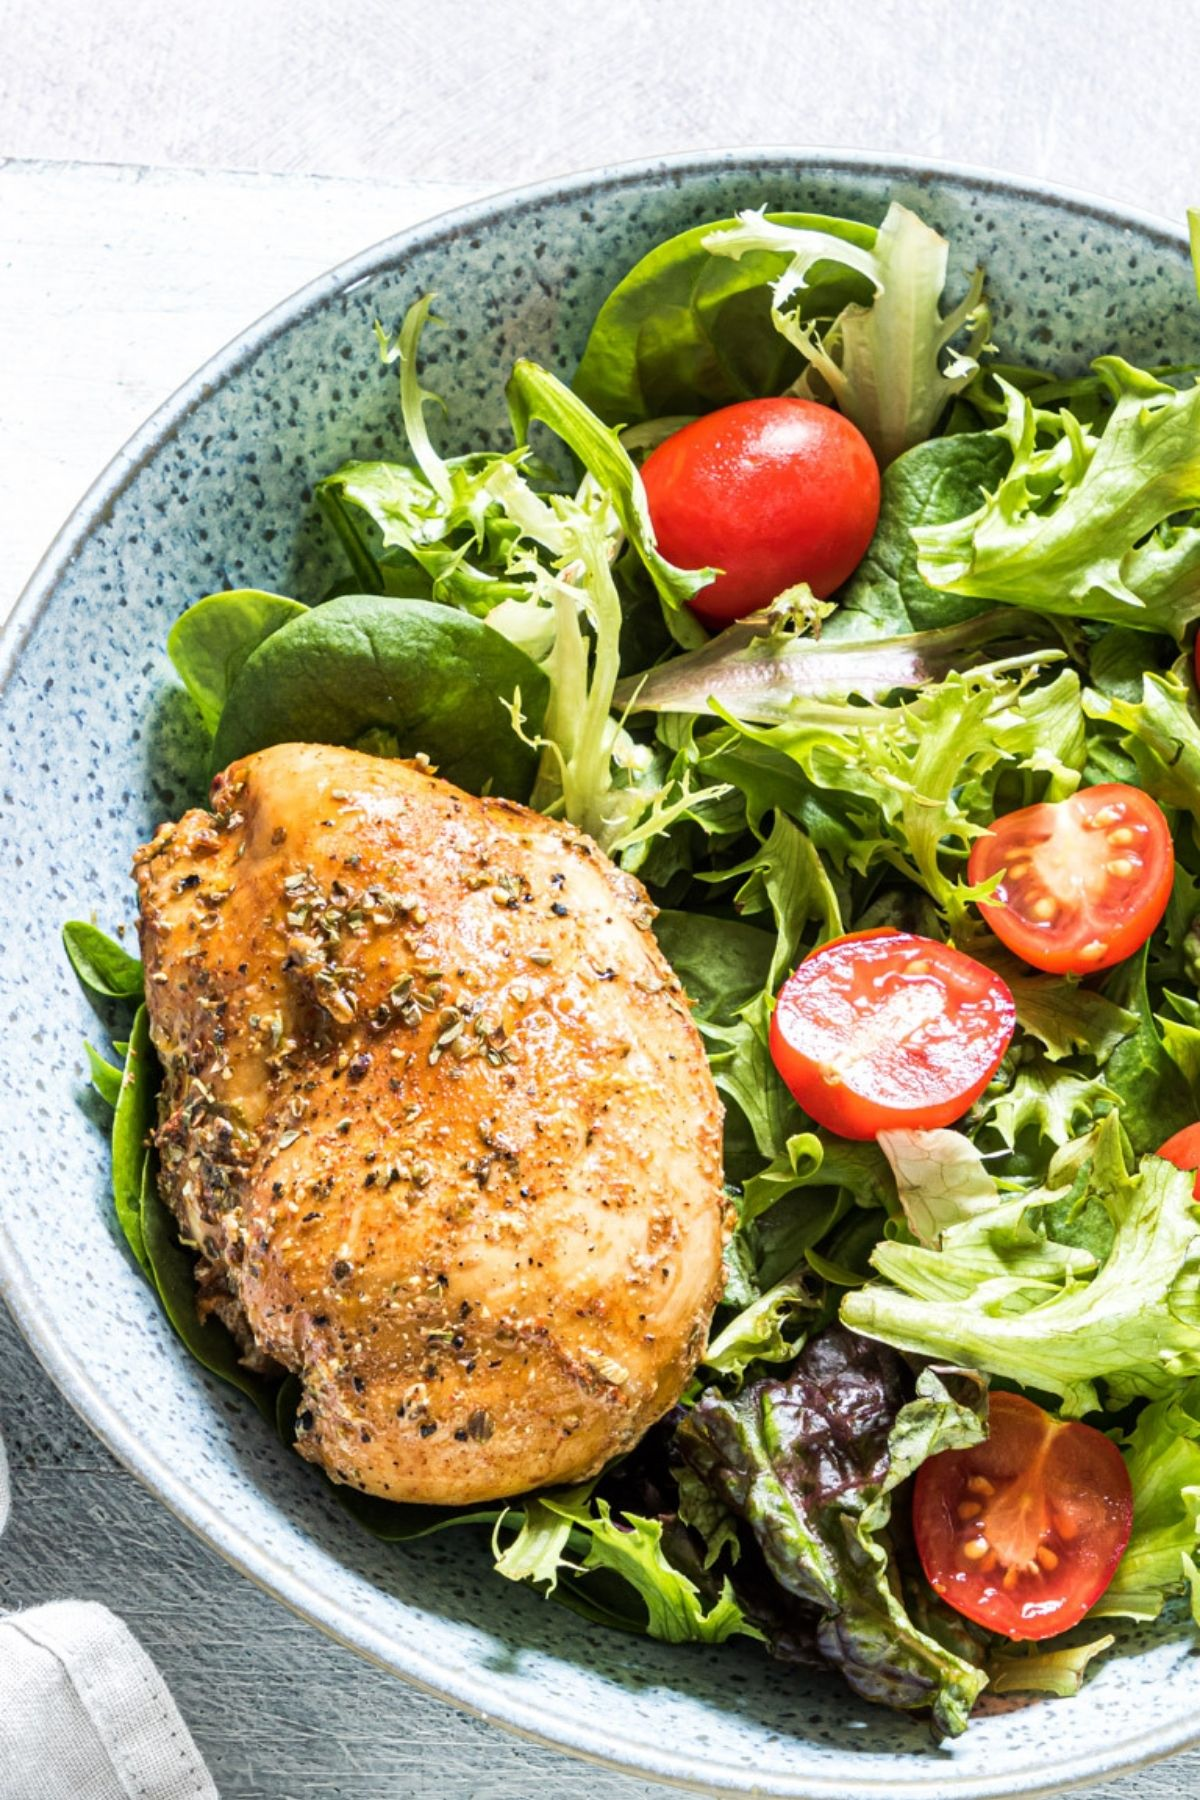 Blue bowl of salad with chicken breast